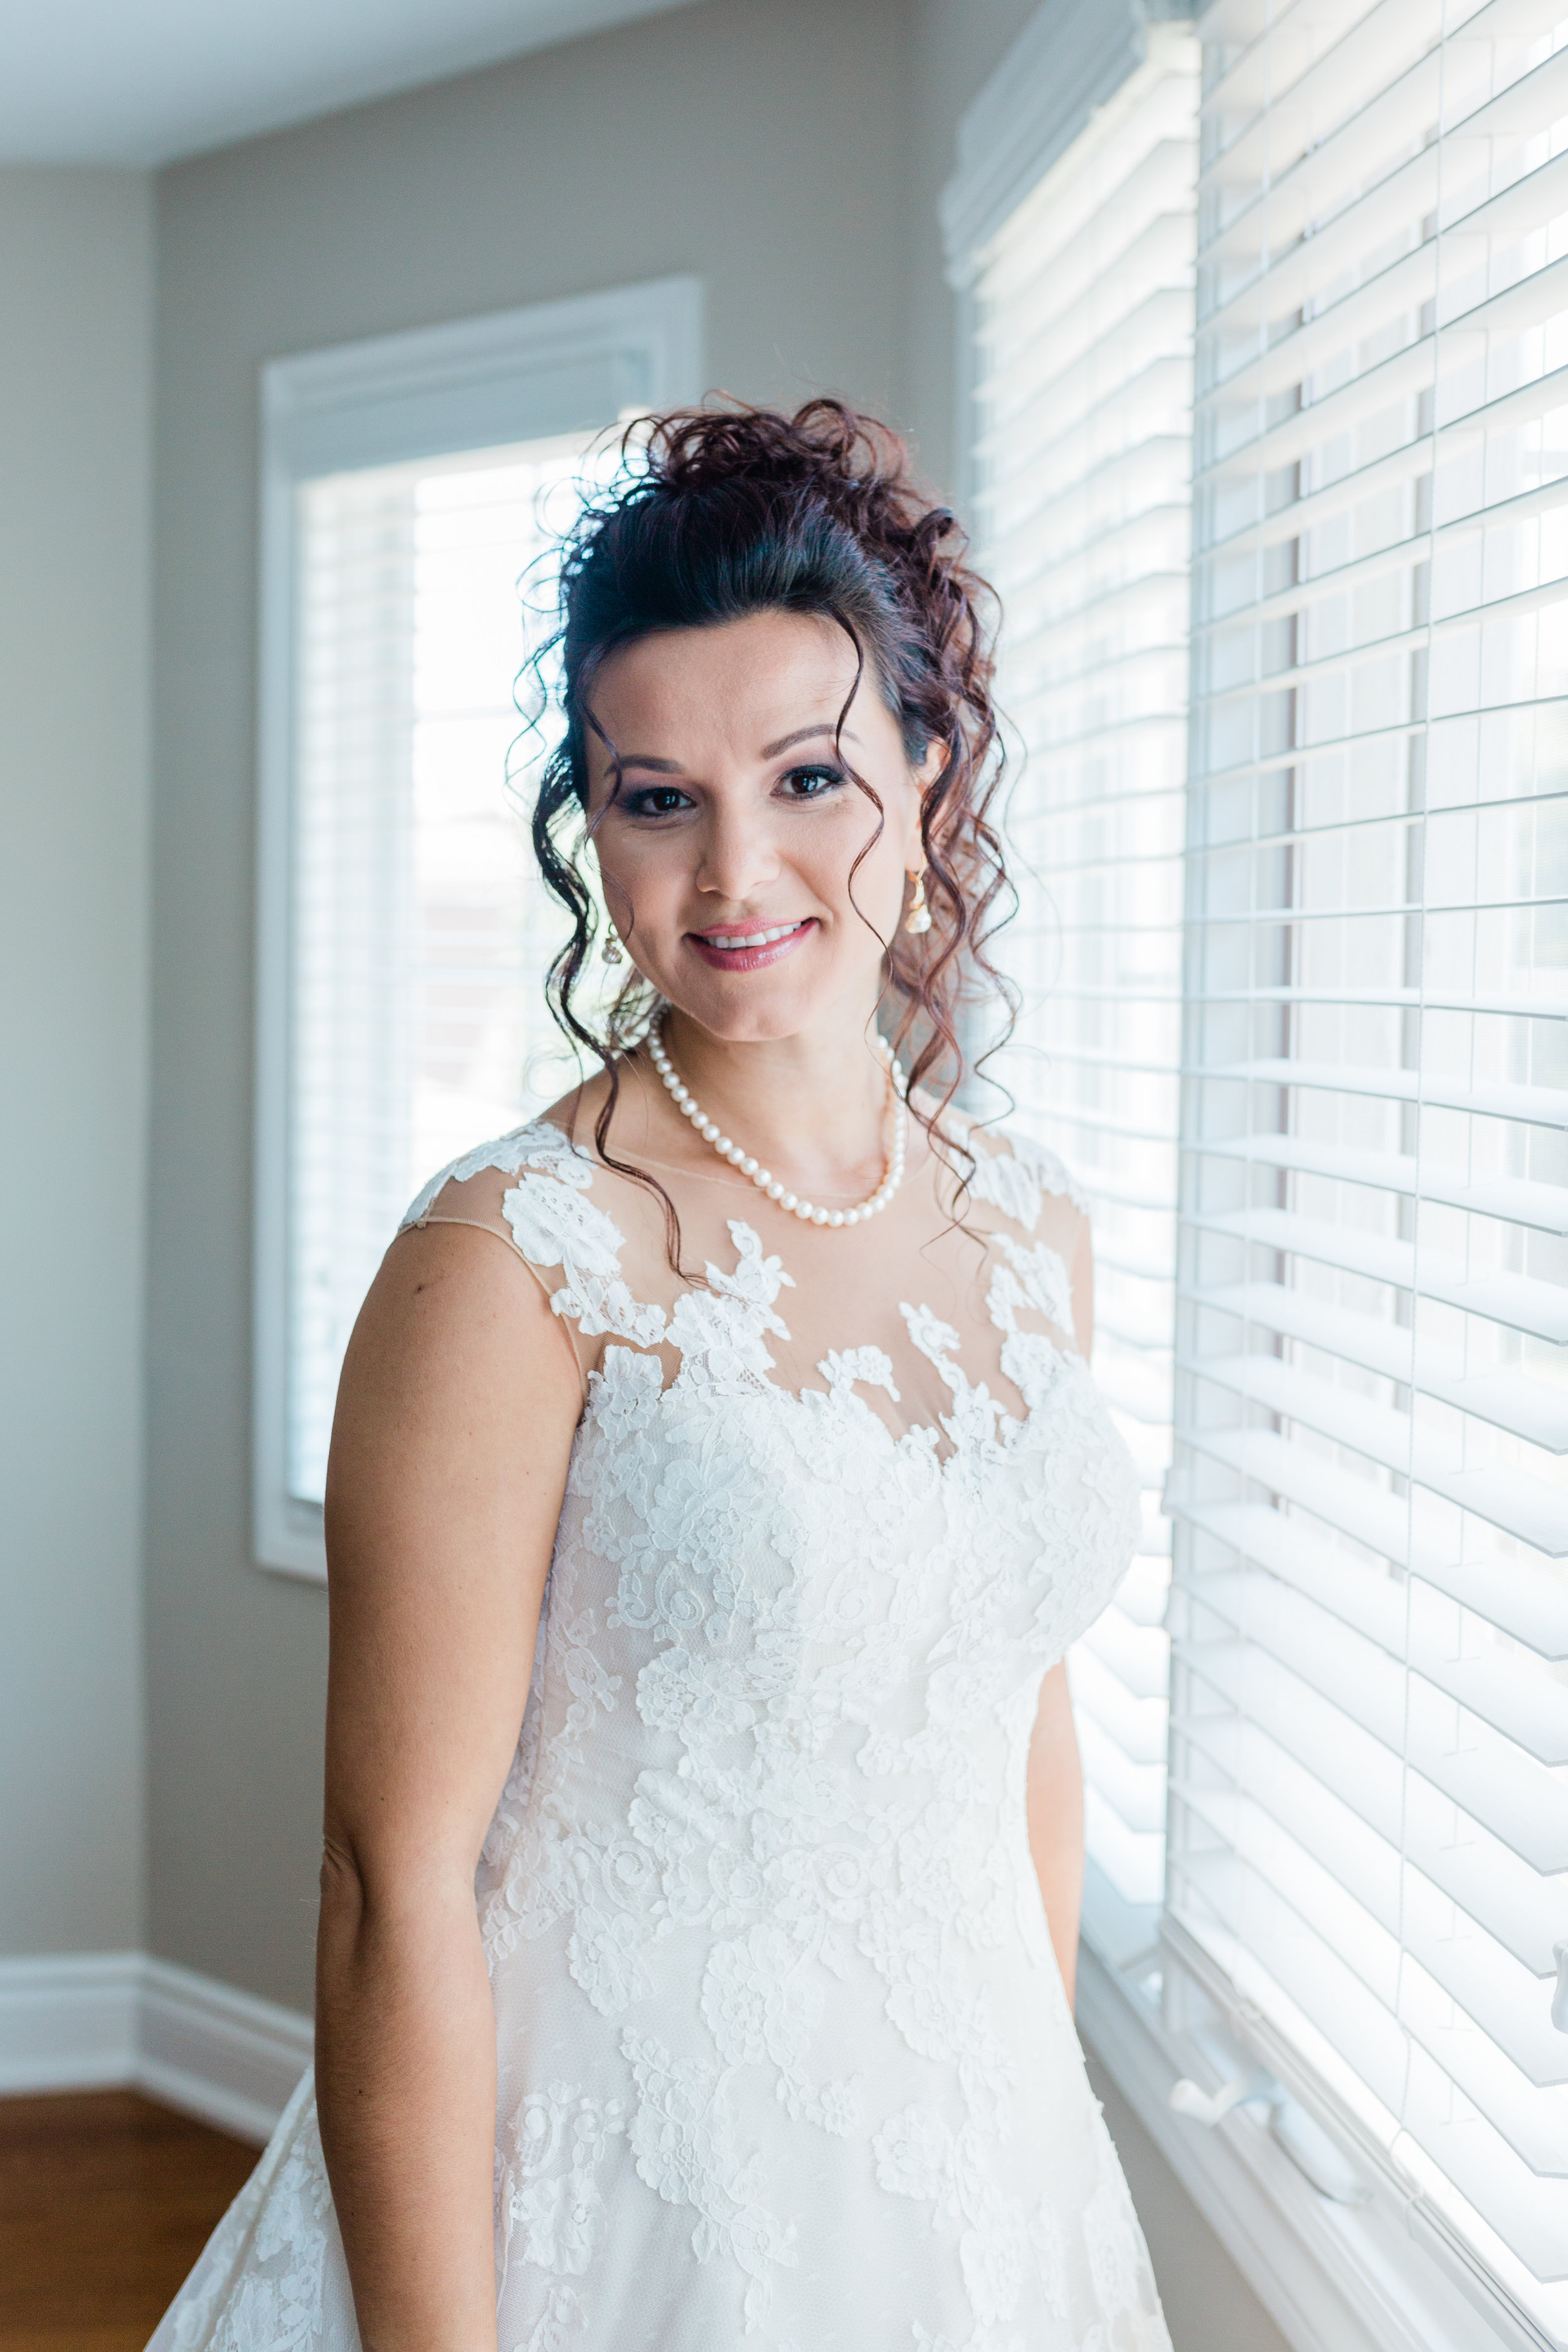 Amir-Danielle-David-Svetlana-Bayview-Wedding-Photography-108.jpg